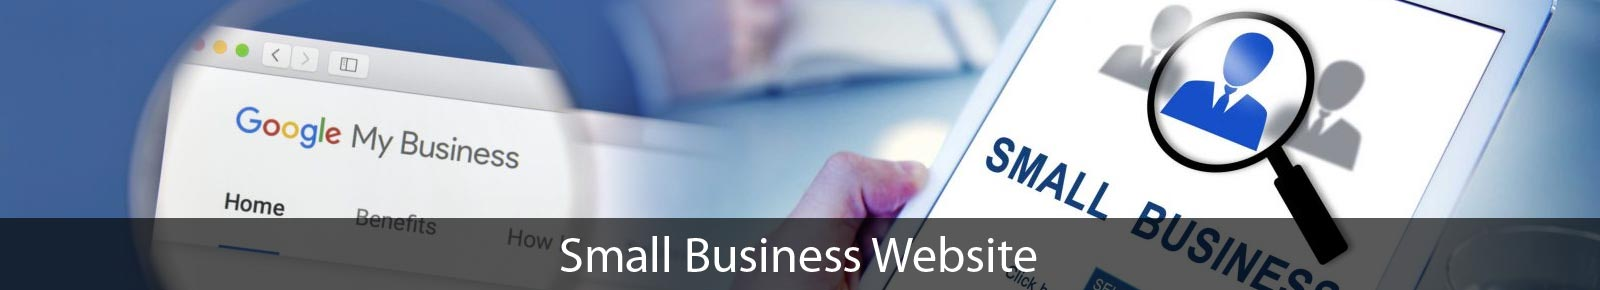 Small Business Website Design Sydney